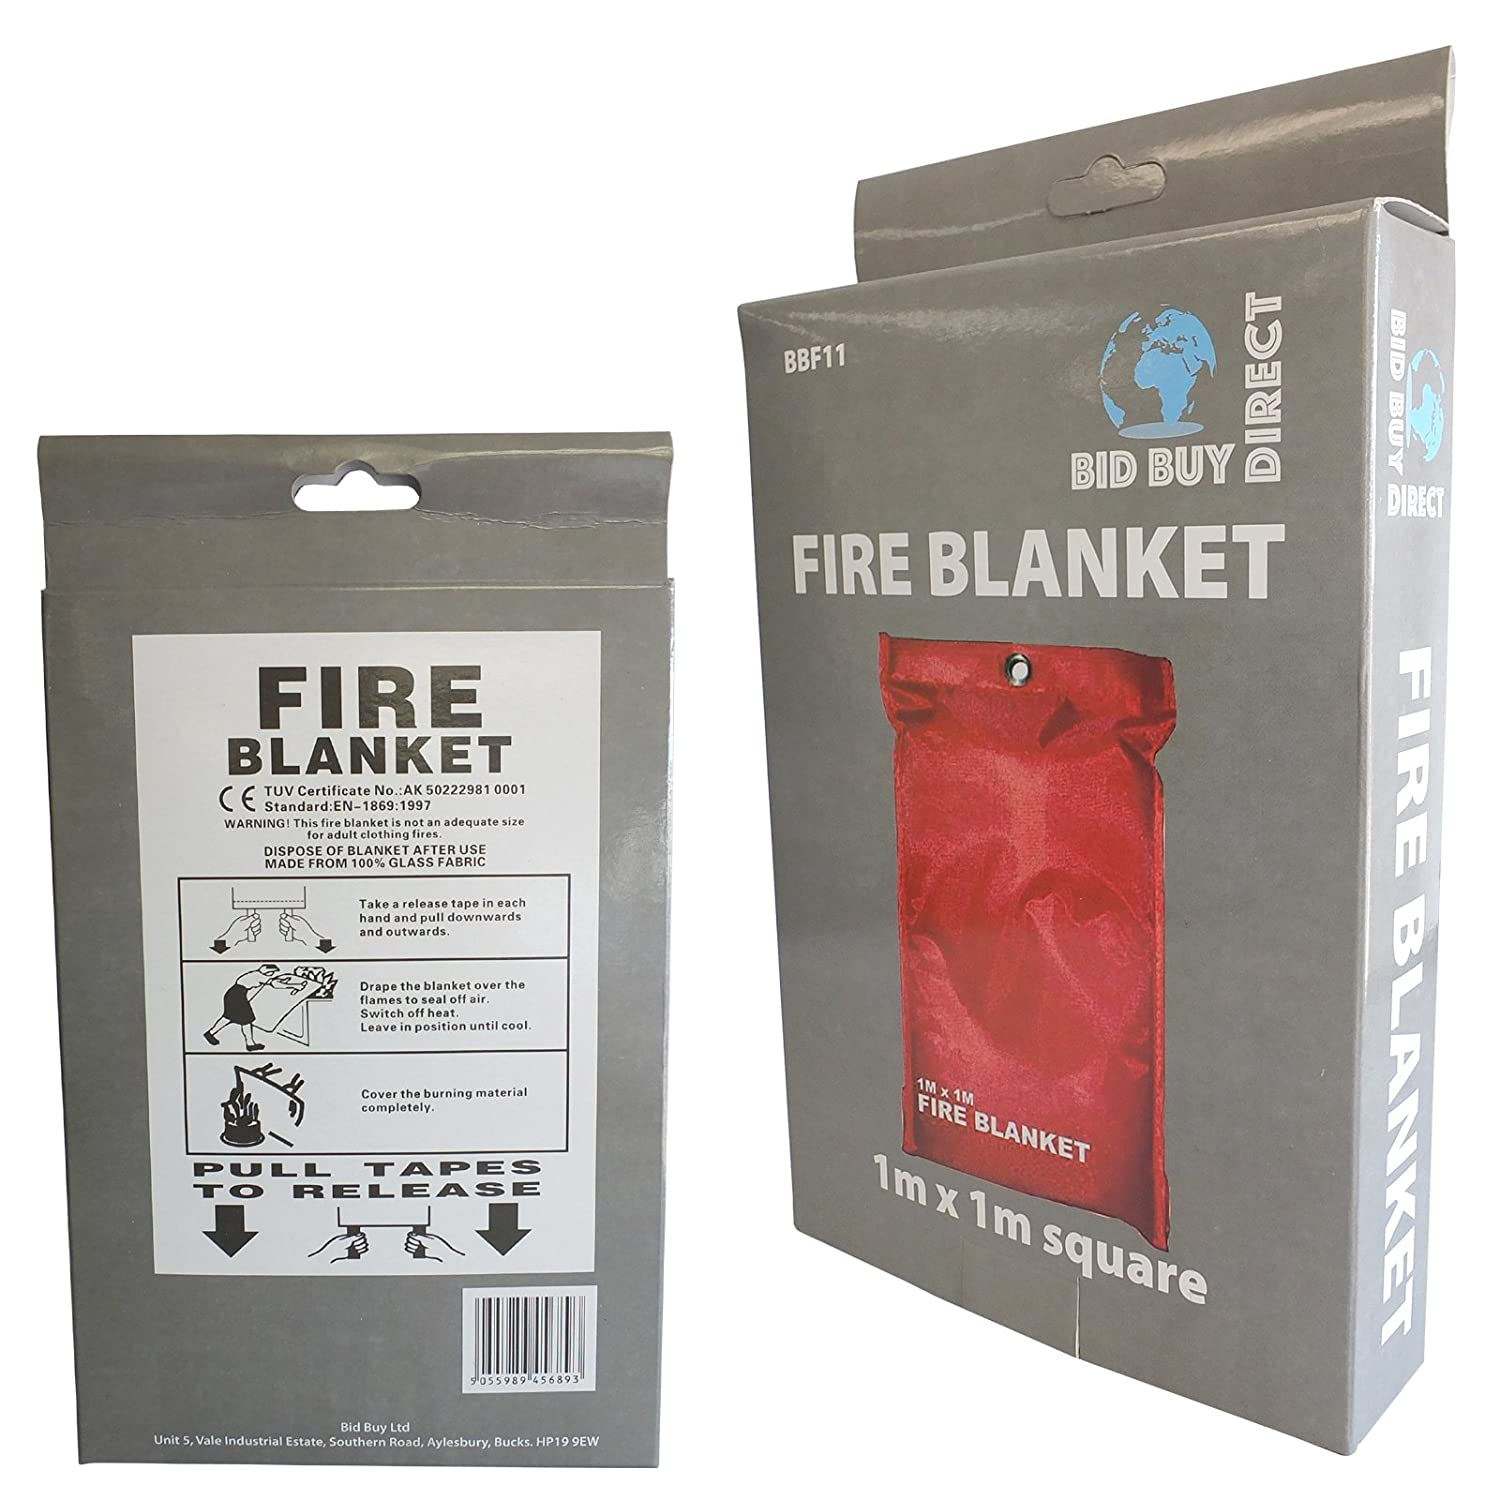 NEW FIRE BLANKET - 1M x 1M - IDEAL FOR KITCHENS, HOMES & CARAVANS Bid Buy Direct